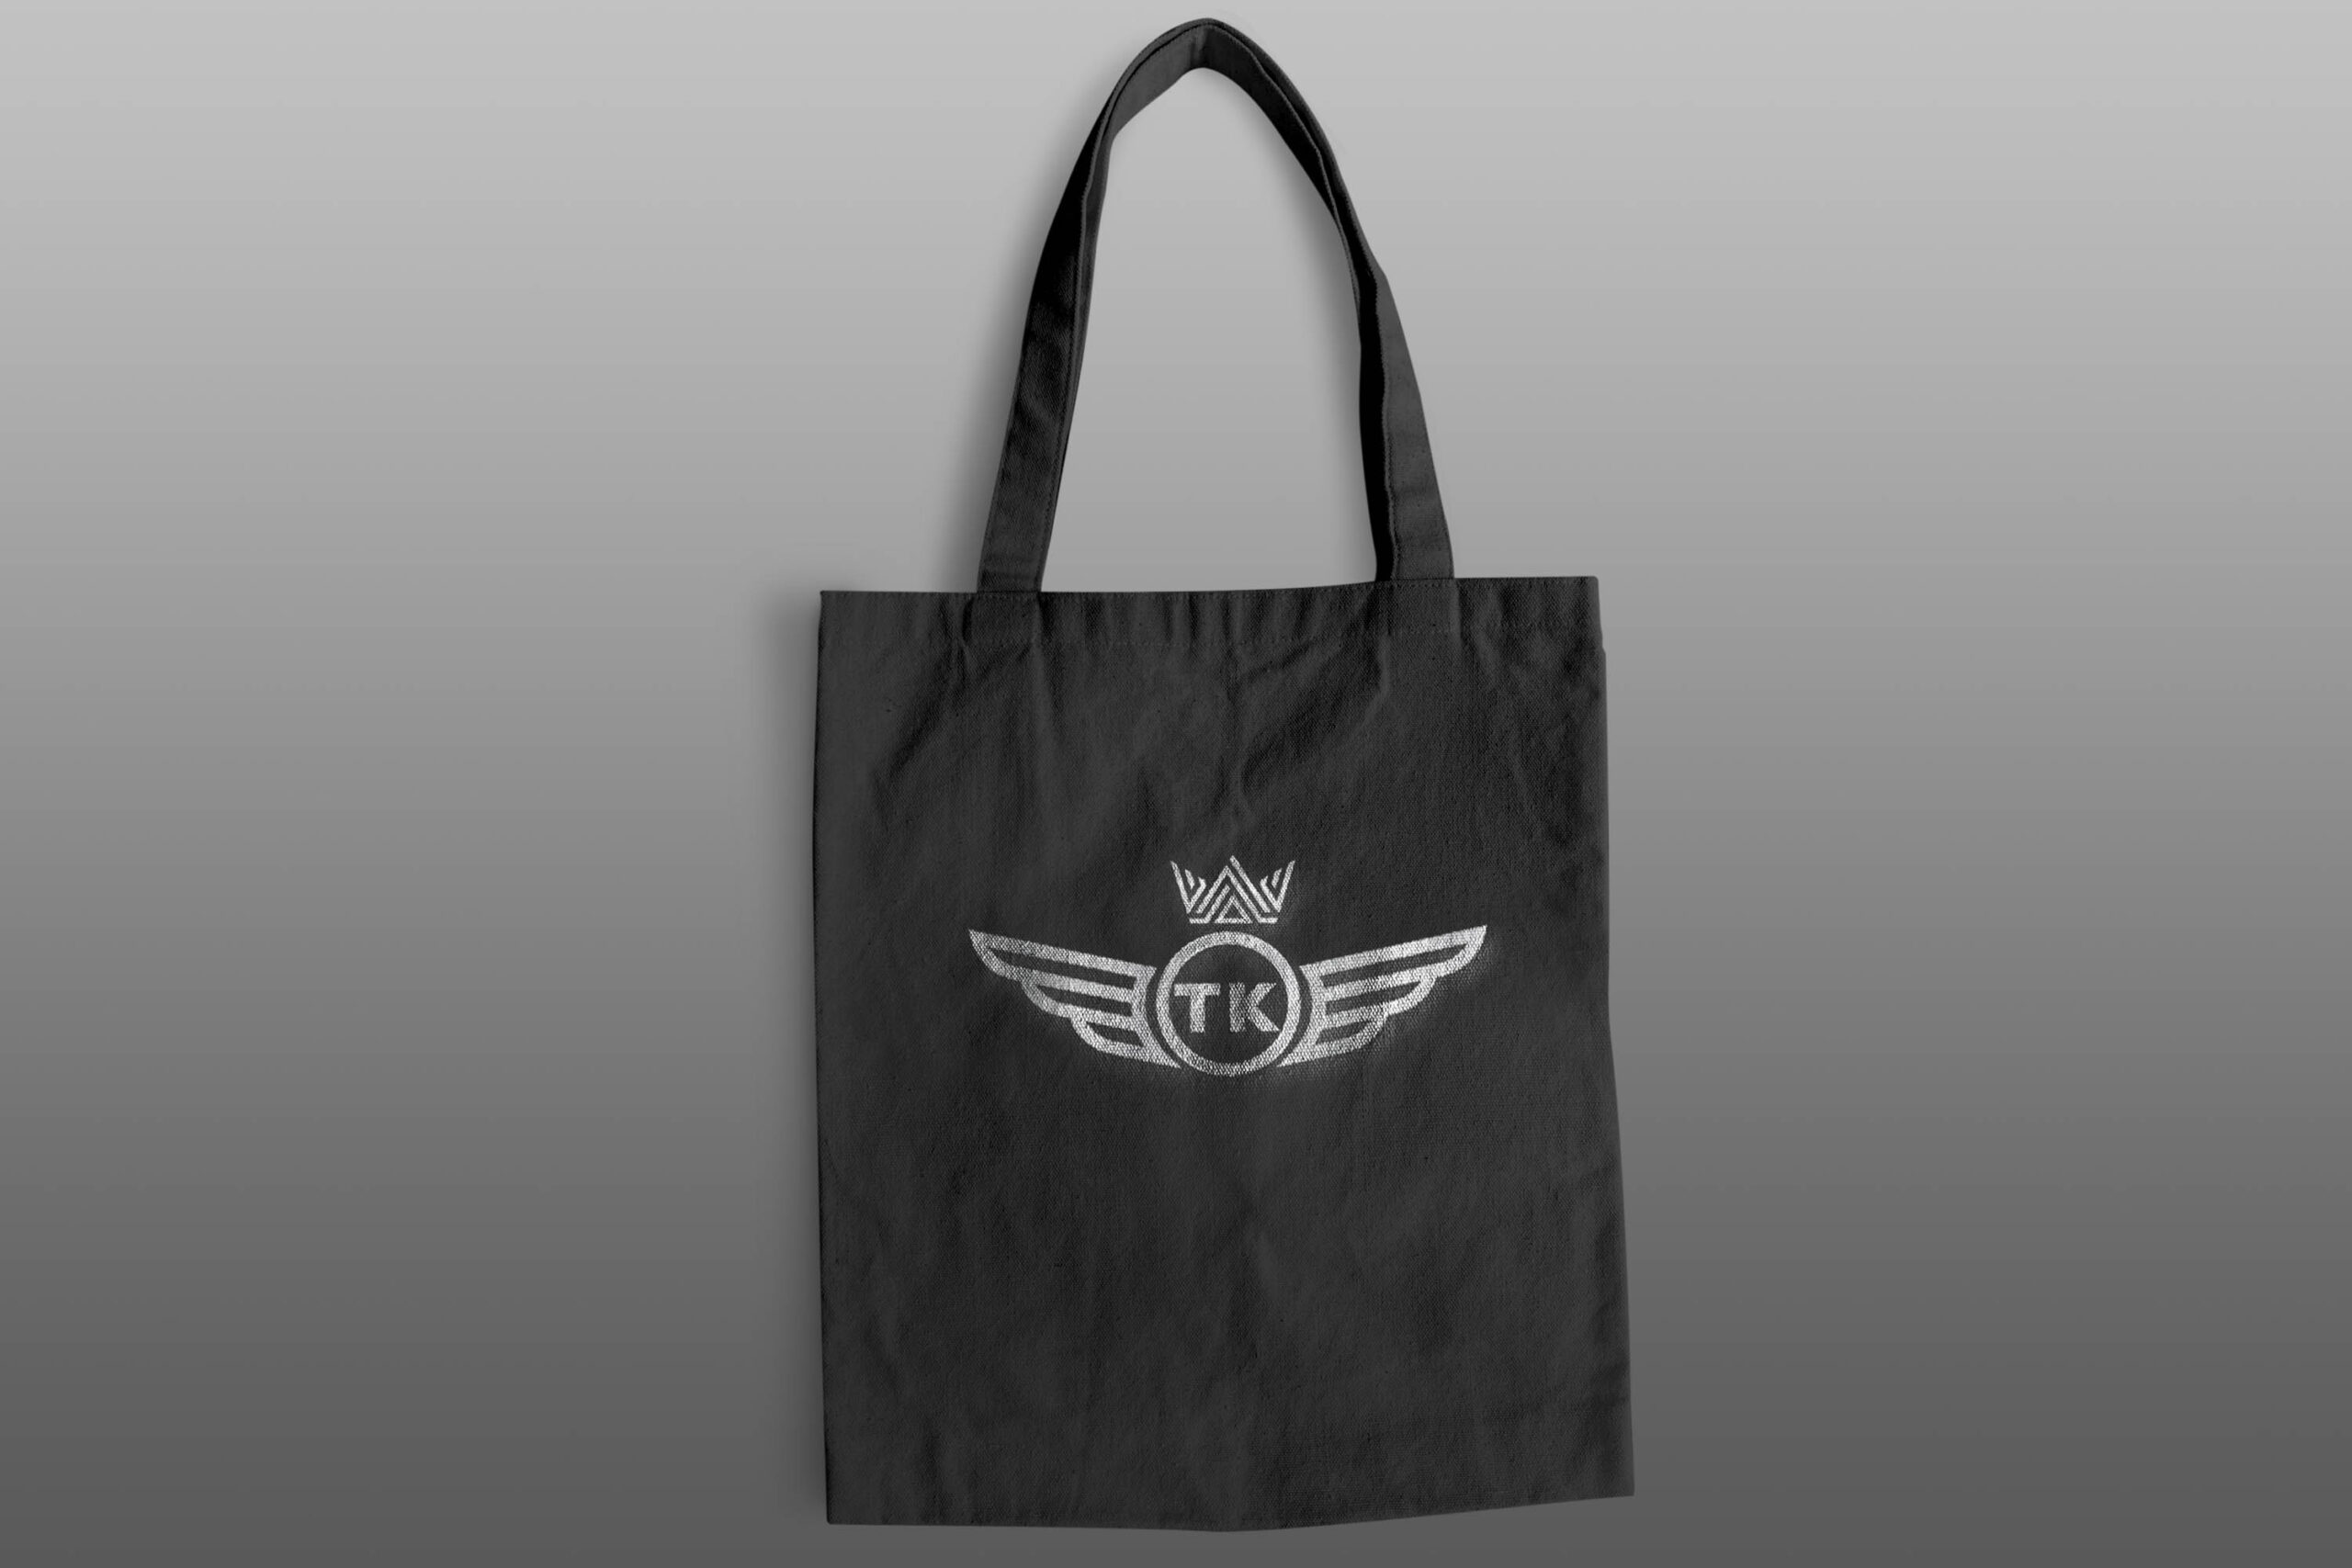 Black Canvas hand bag, with silver logo